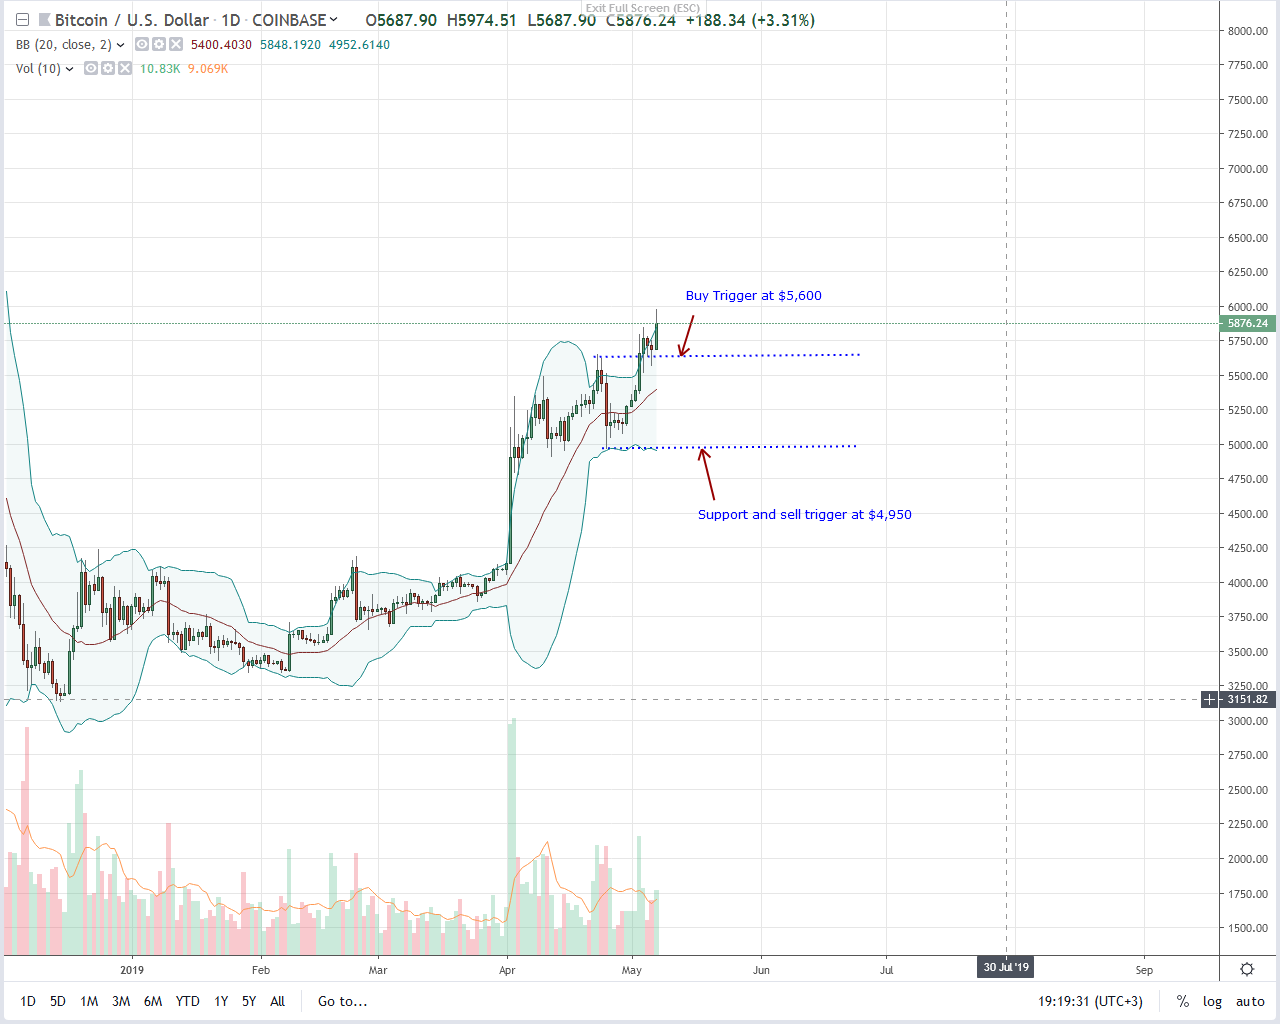 Bitcoin (BTC) Is A Secure Investment Next To Gold, A Primer to $8,500?